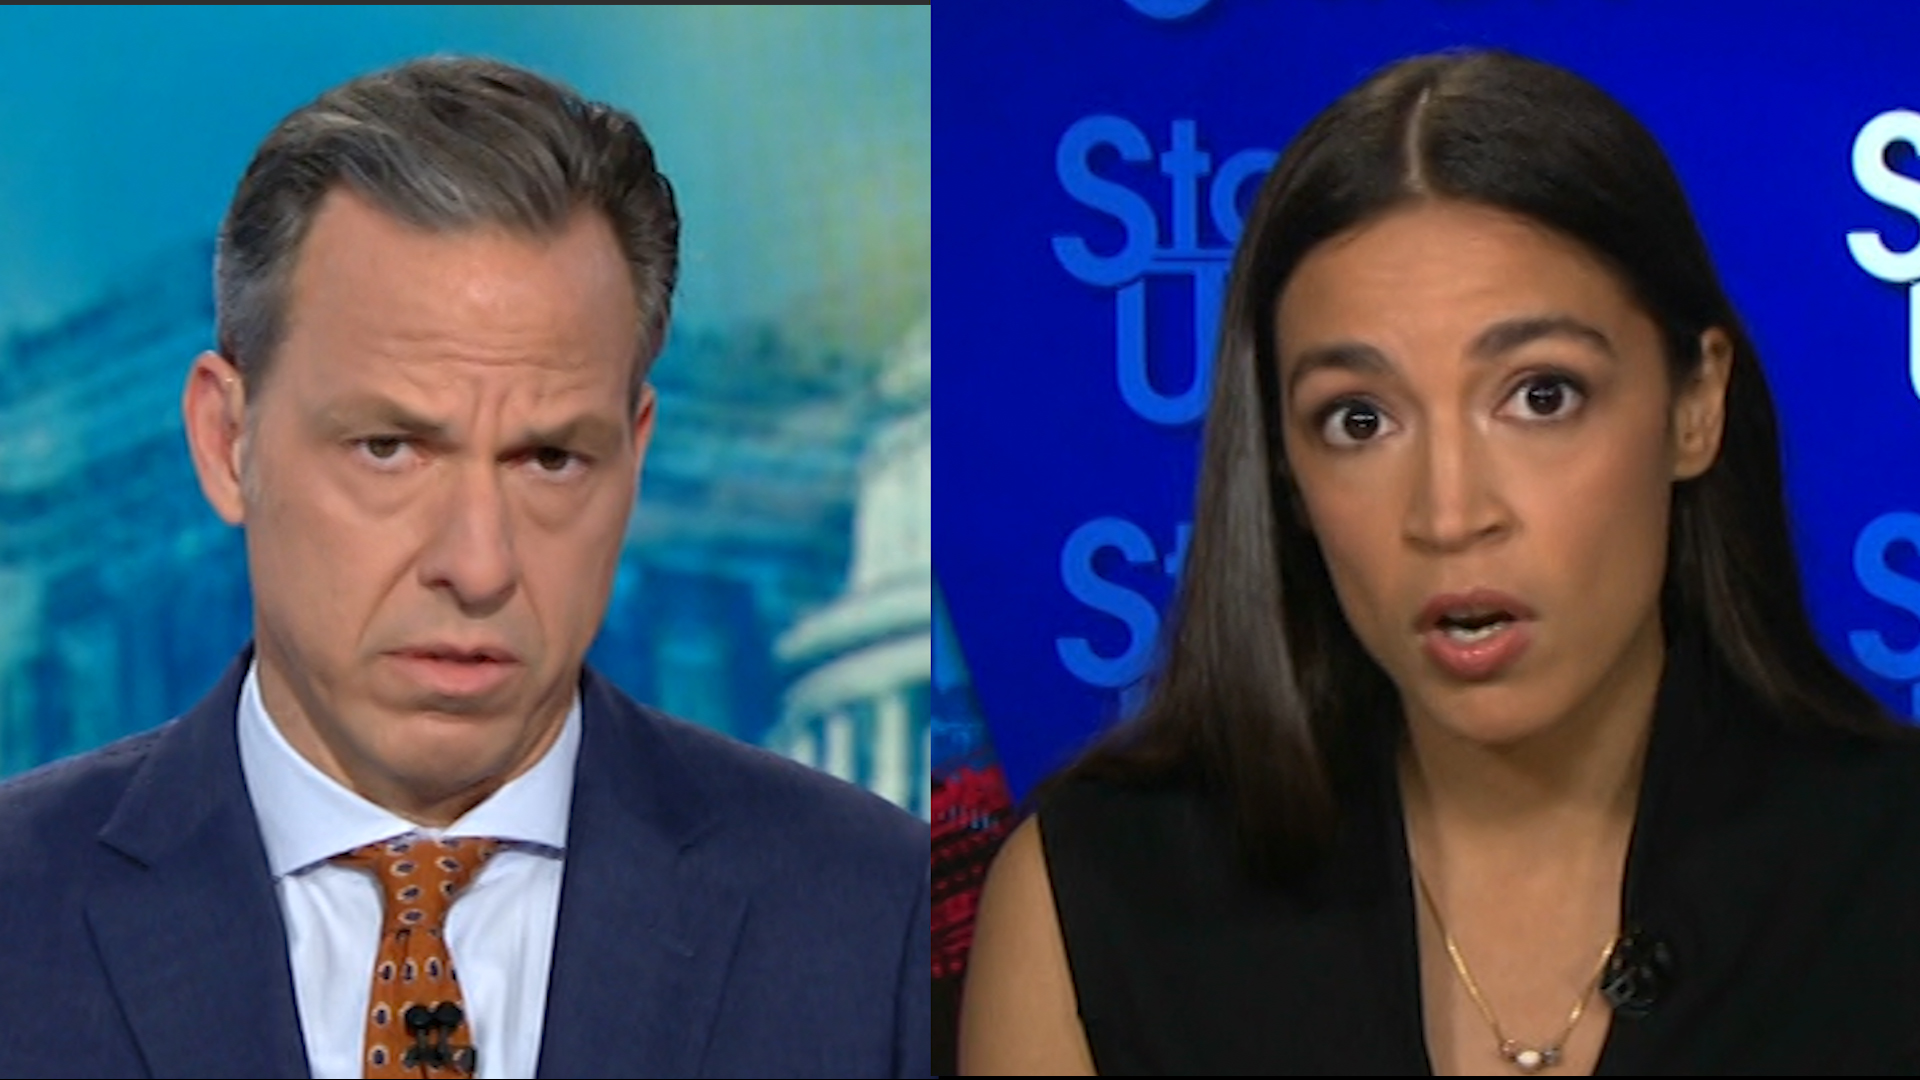 Image result for images of jake tapper and aoc